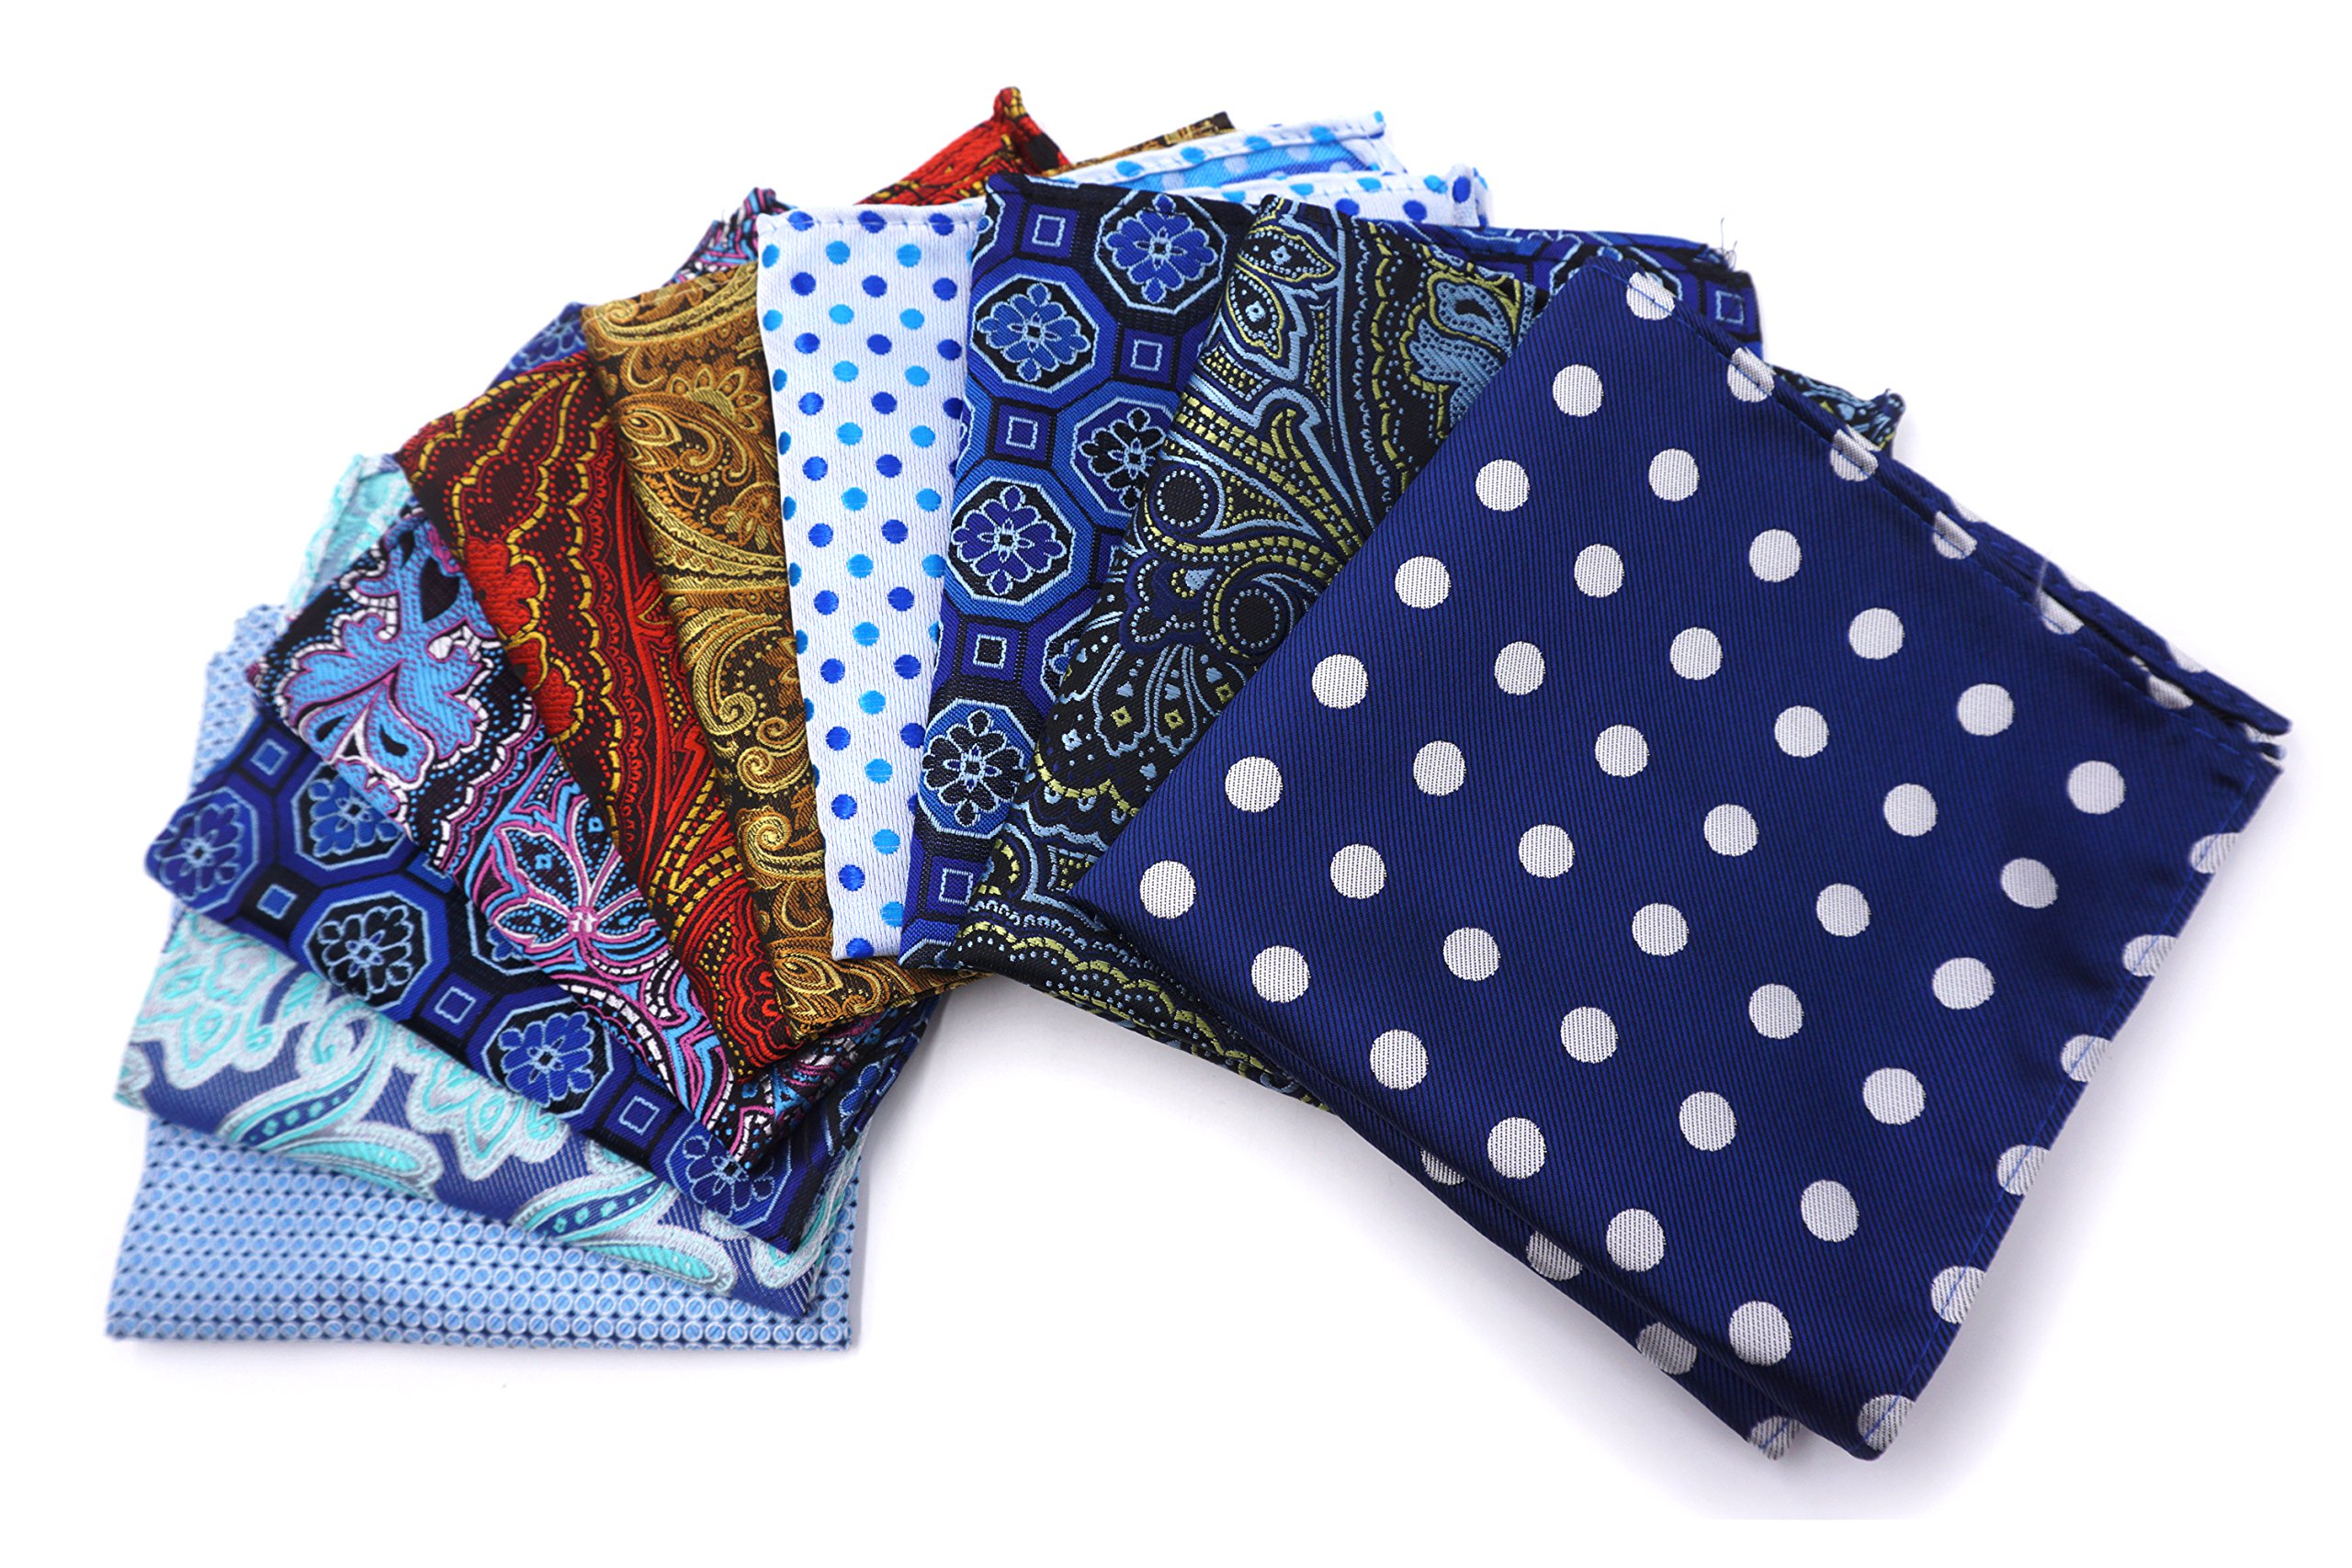 AVANTMEN 10 PCS Men's Pocket Squares Assorted Woven Handkerchief Hanky with Gift Box (10 x 10'', S8)